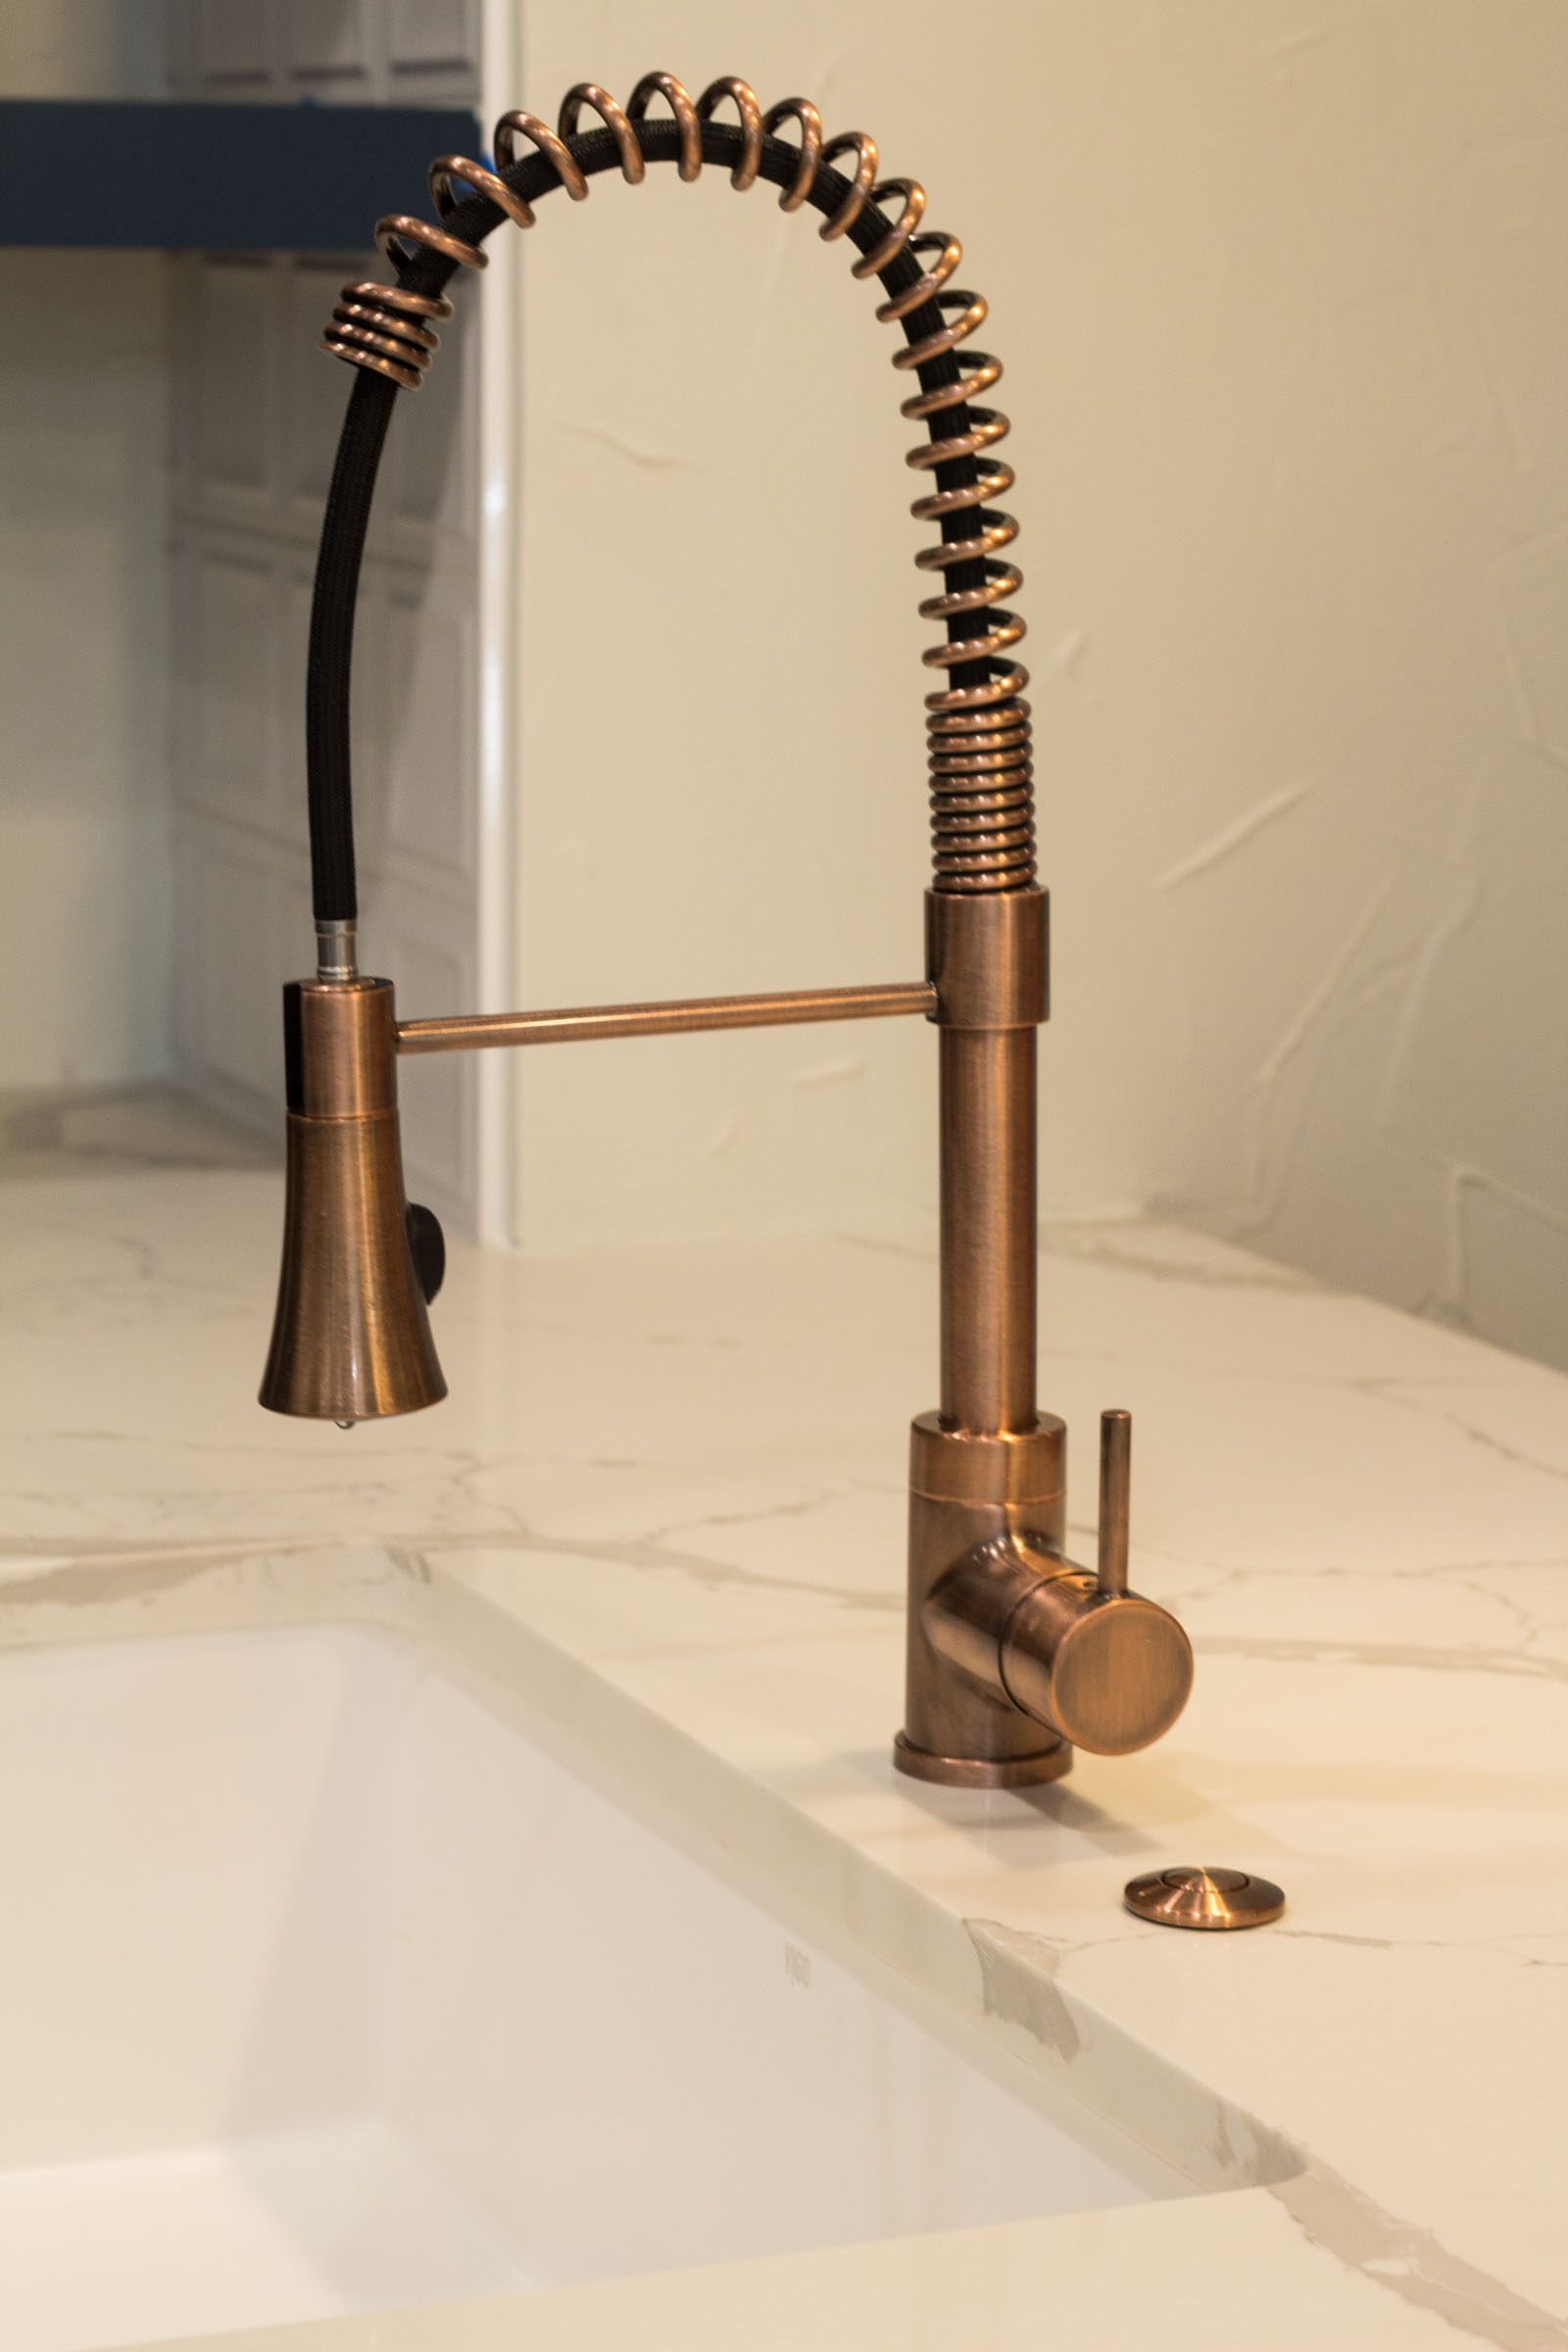 Close up photo of copper swan neck sink faucet